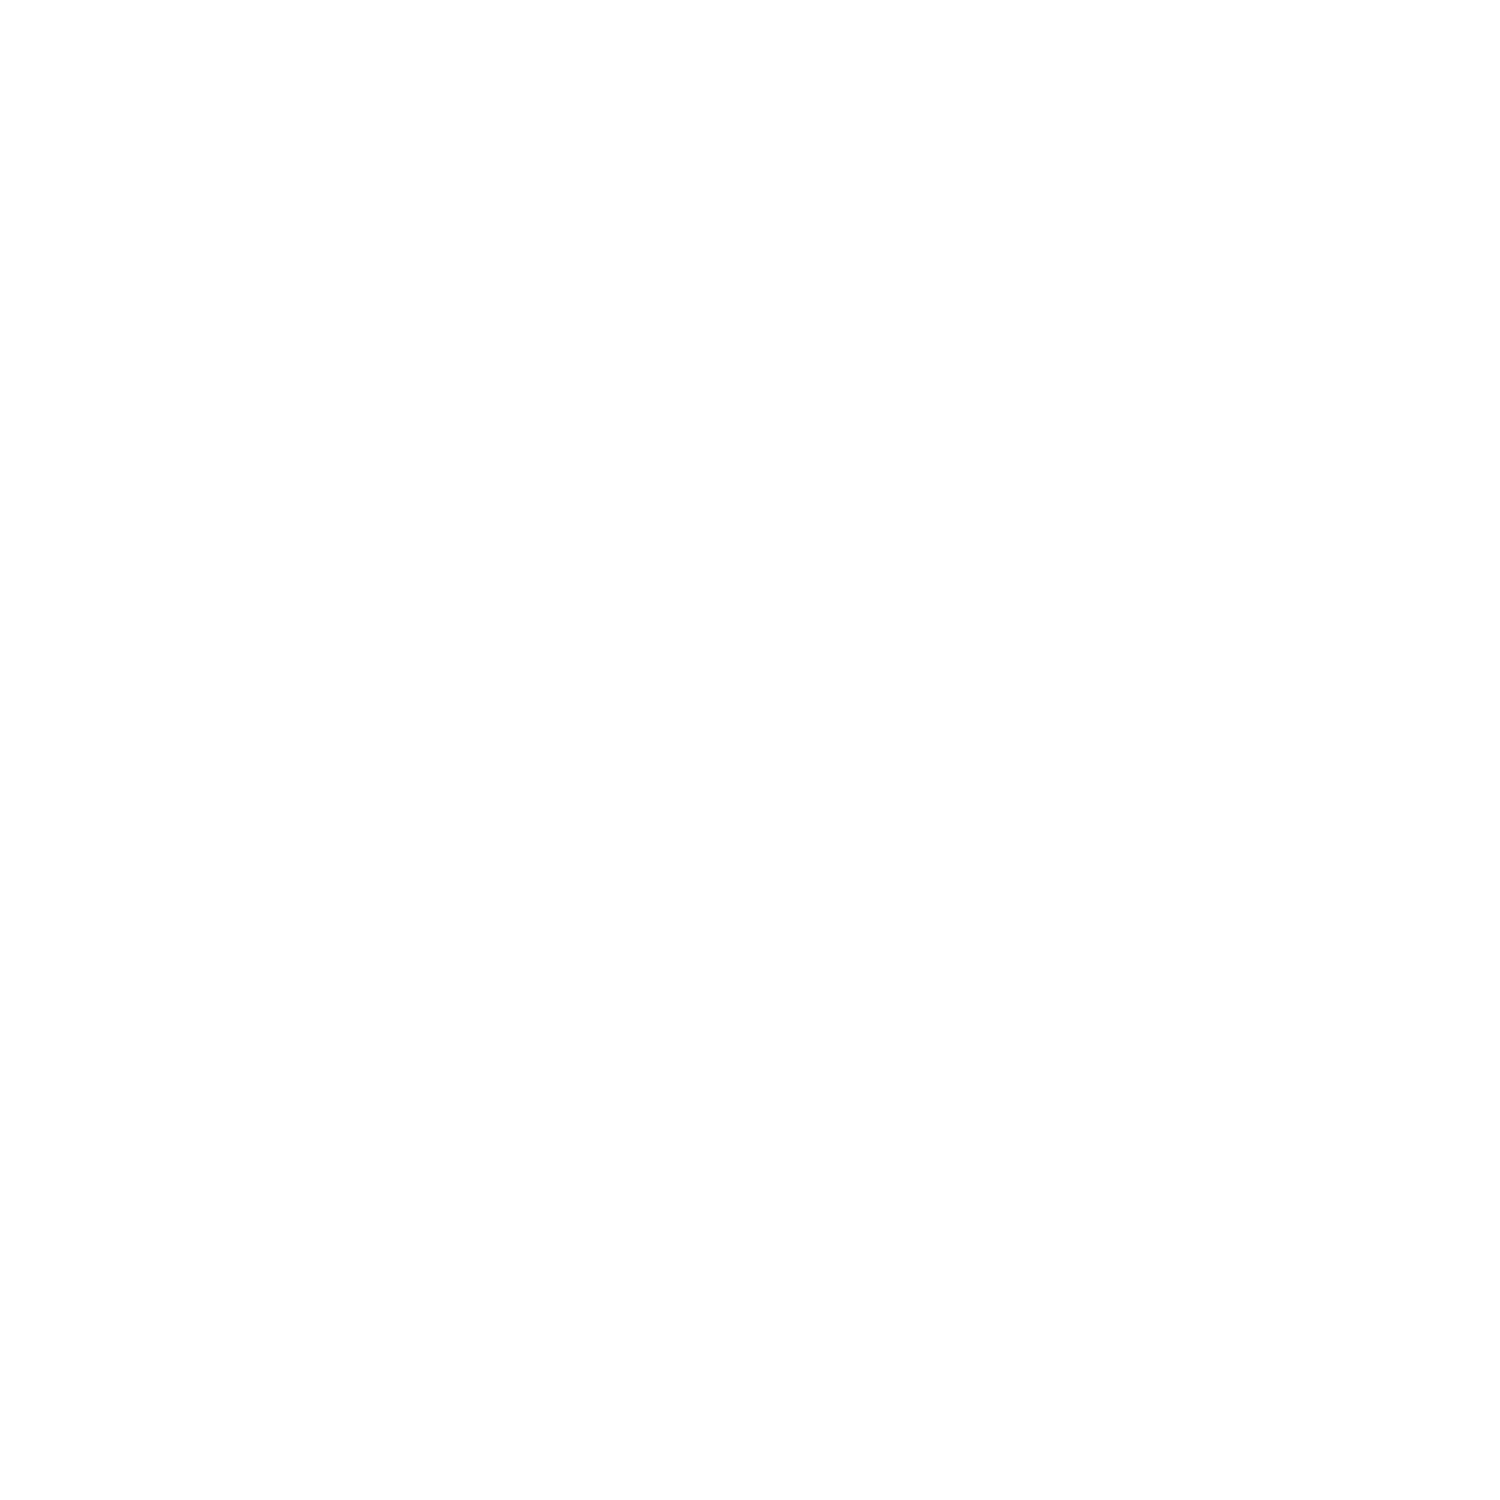 The King's House School, Windsor